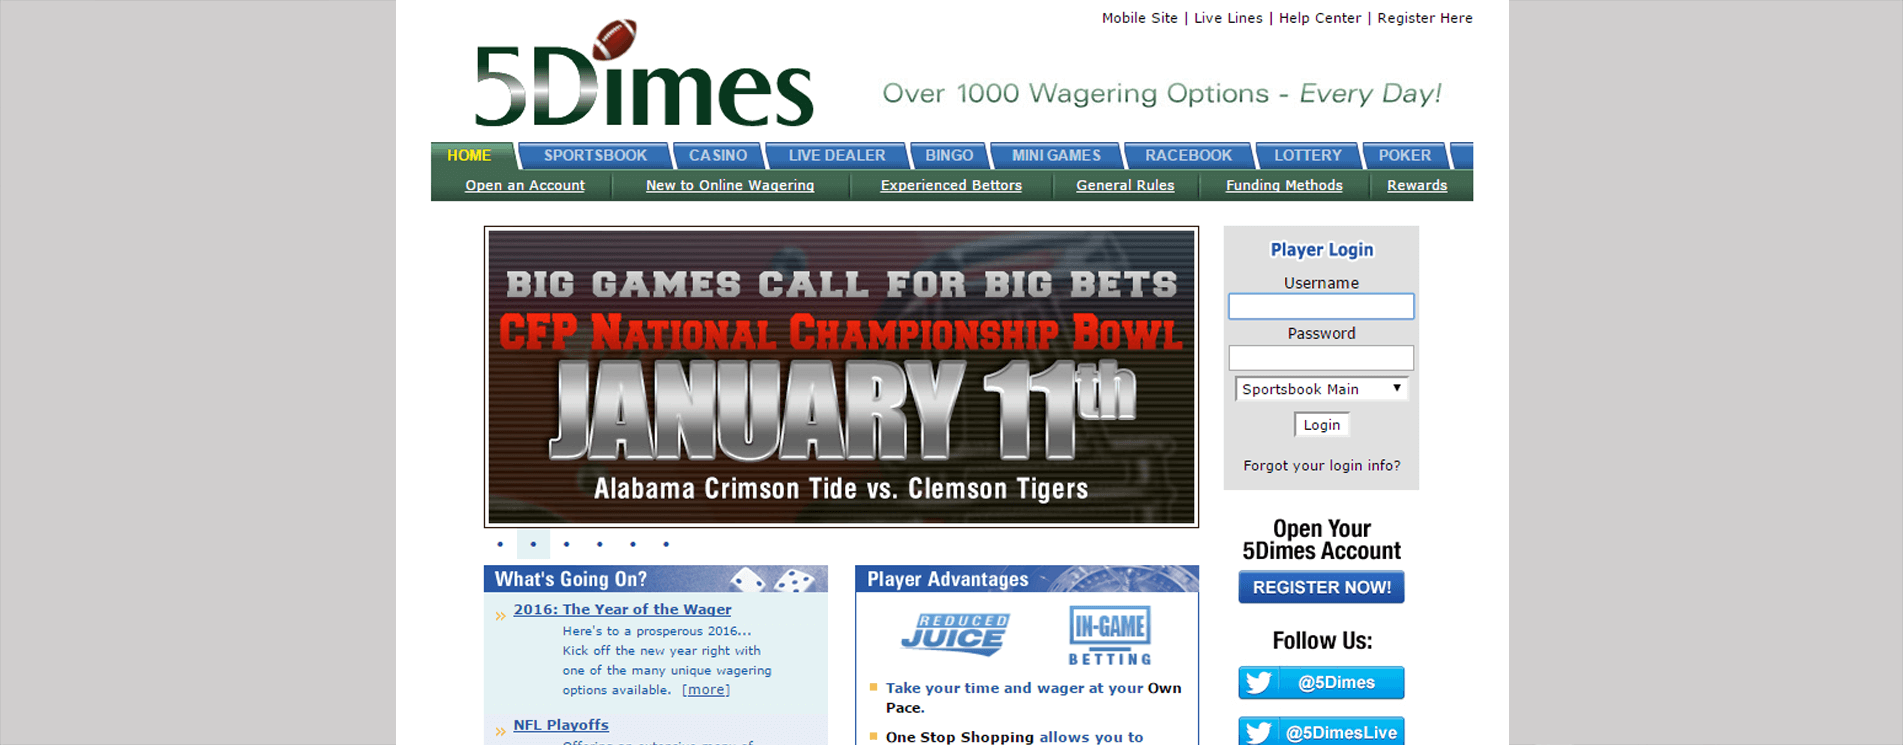 5dimes gambling site free bingo new sites no deposit